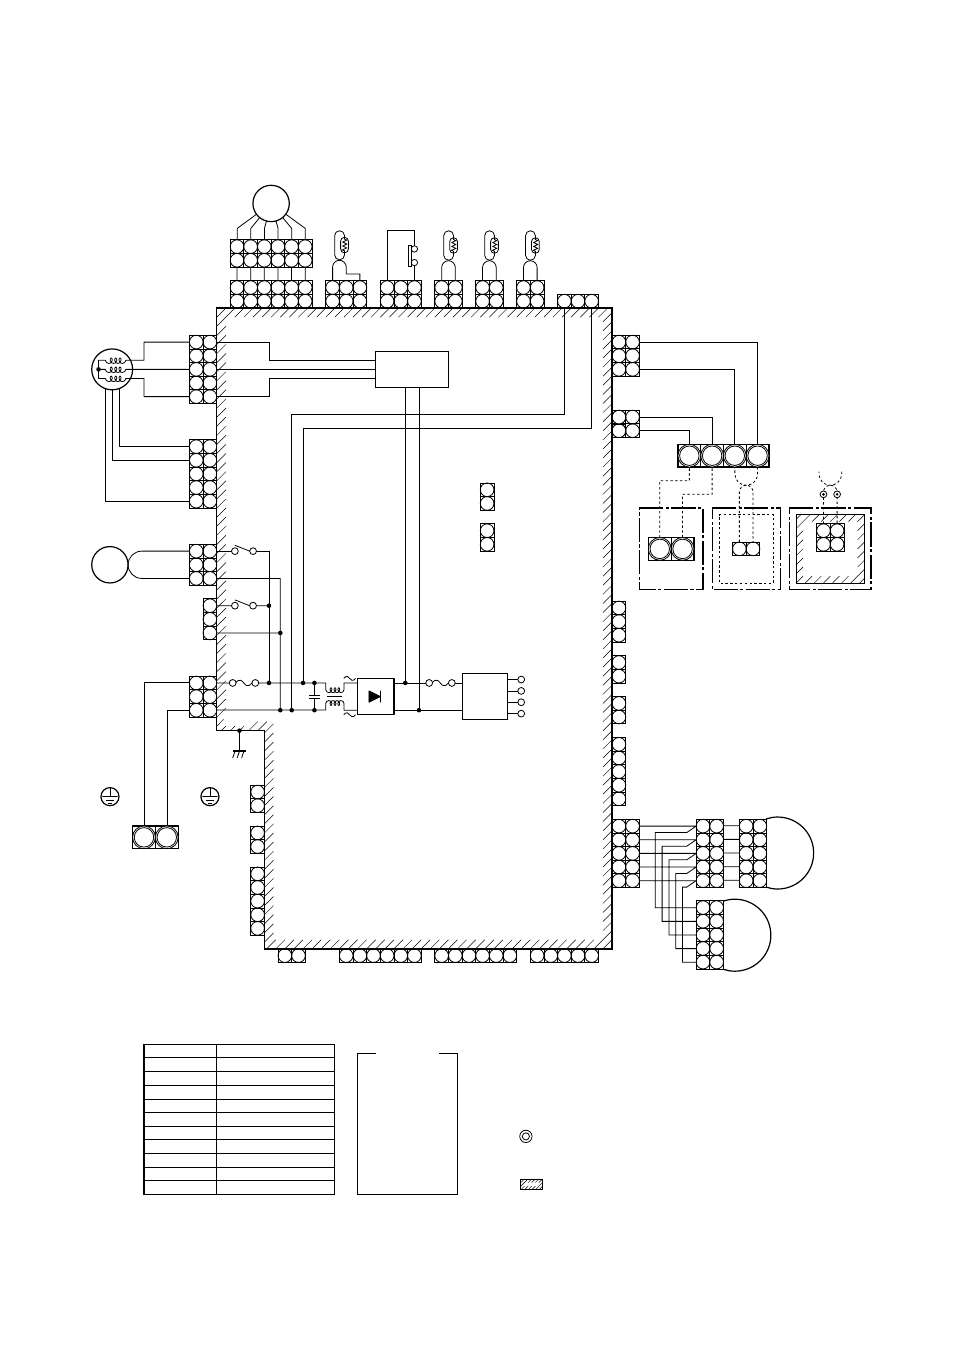 toshiba mmu ap0121mh page9 wiring diagram, control p c board for indoor unit mcc 1402 toshiba motor wiring diagram at creativeand.co